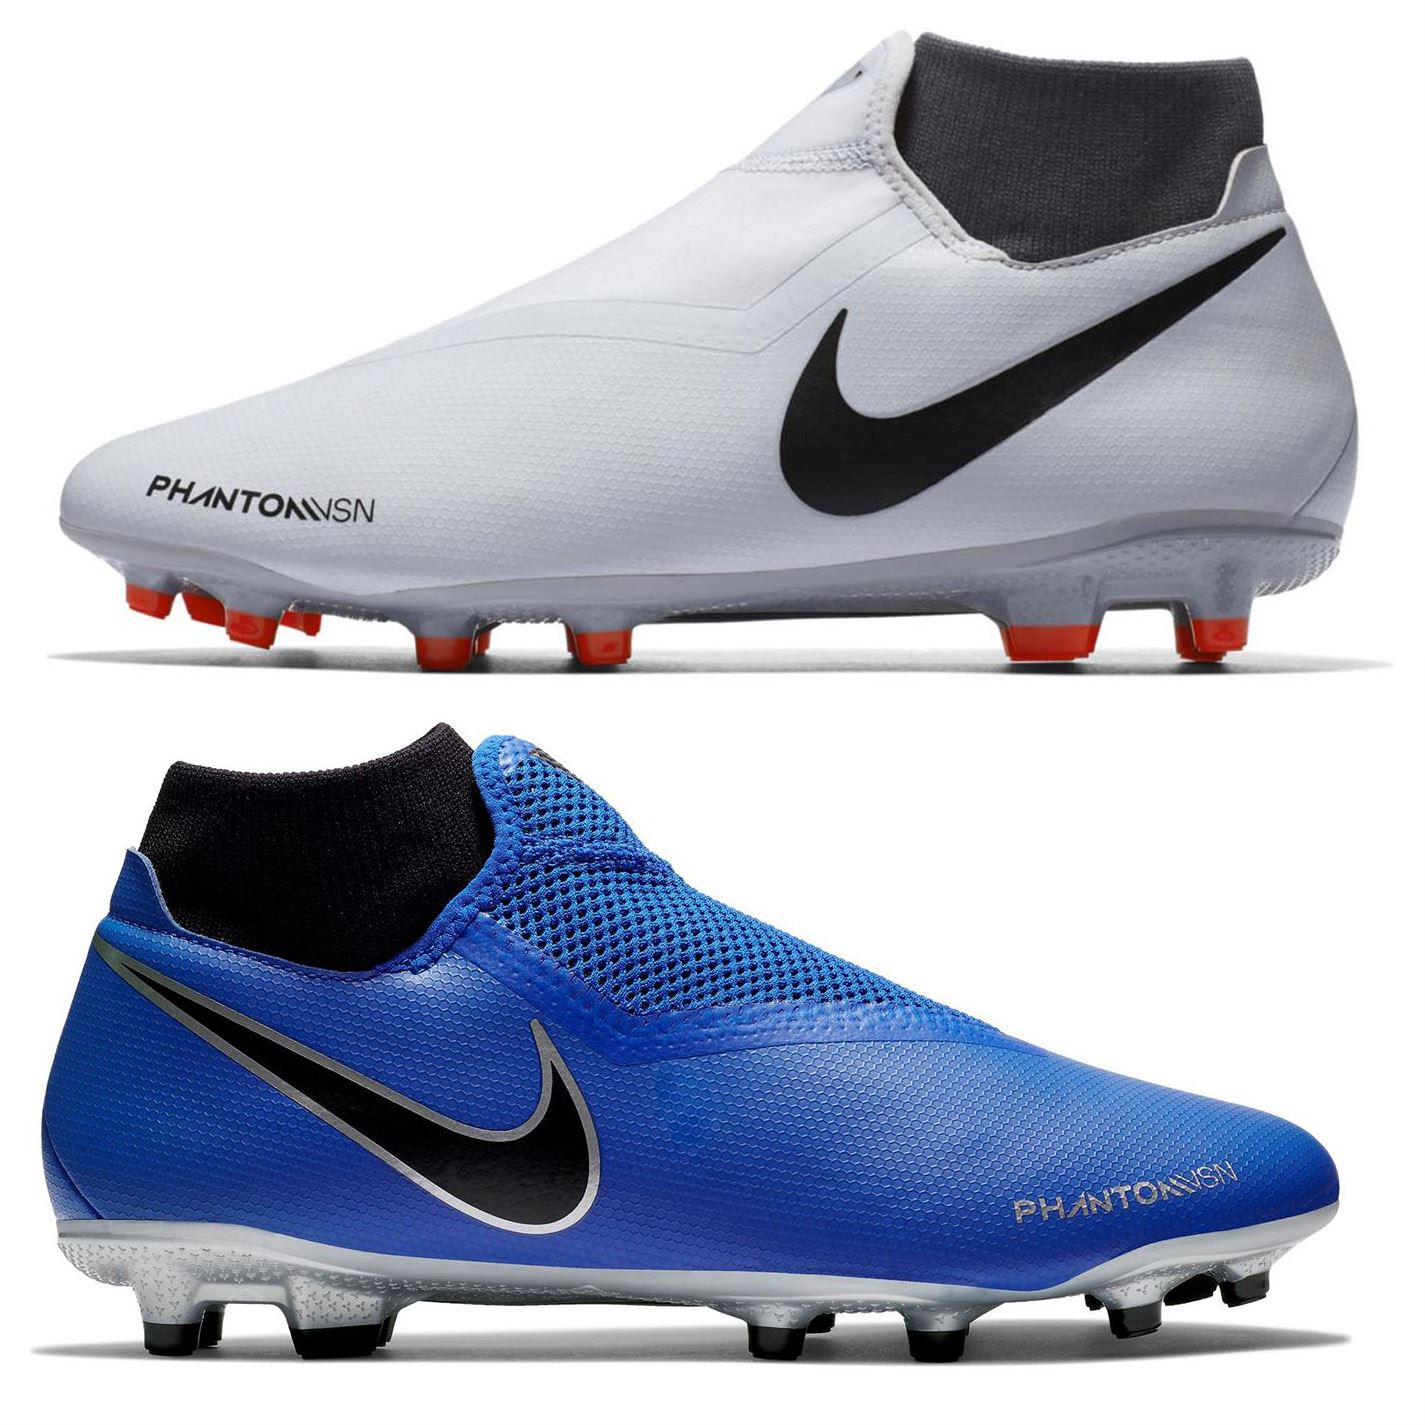 b240ae04f ... Nike Phantom Vision Academy DF FG Firm Ground Football Boots Mens  Soccer Cleats ...